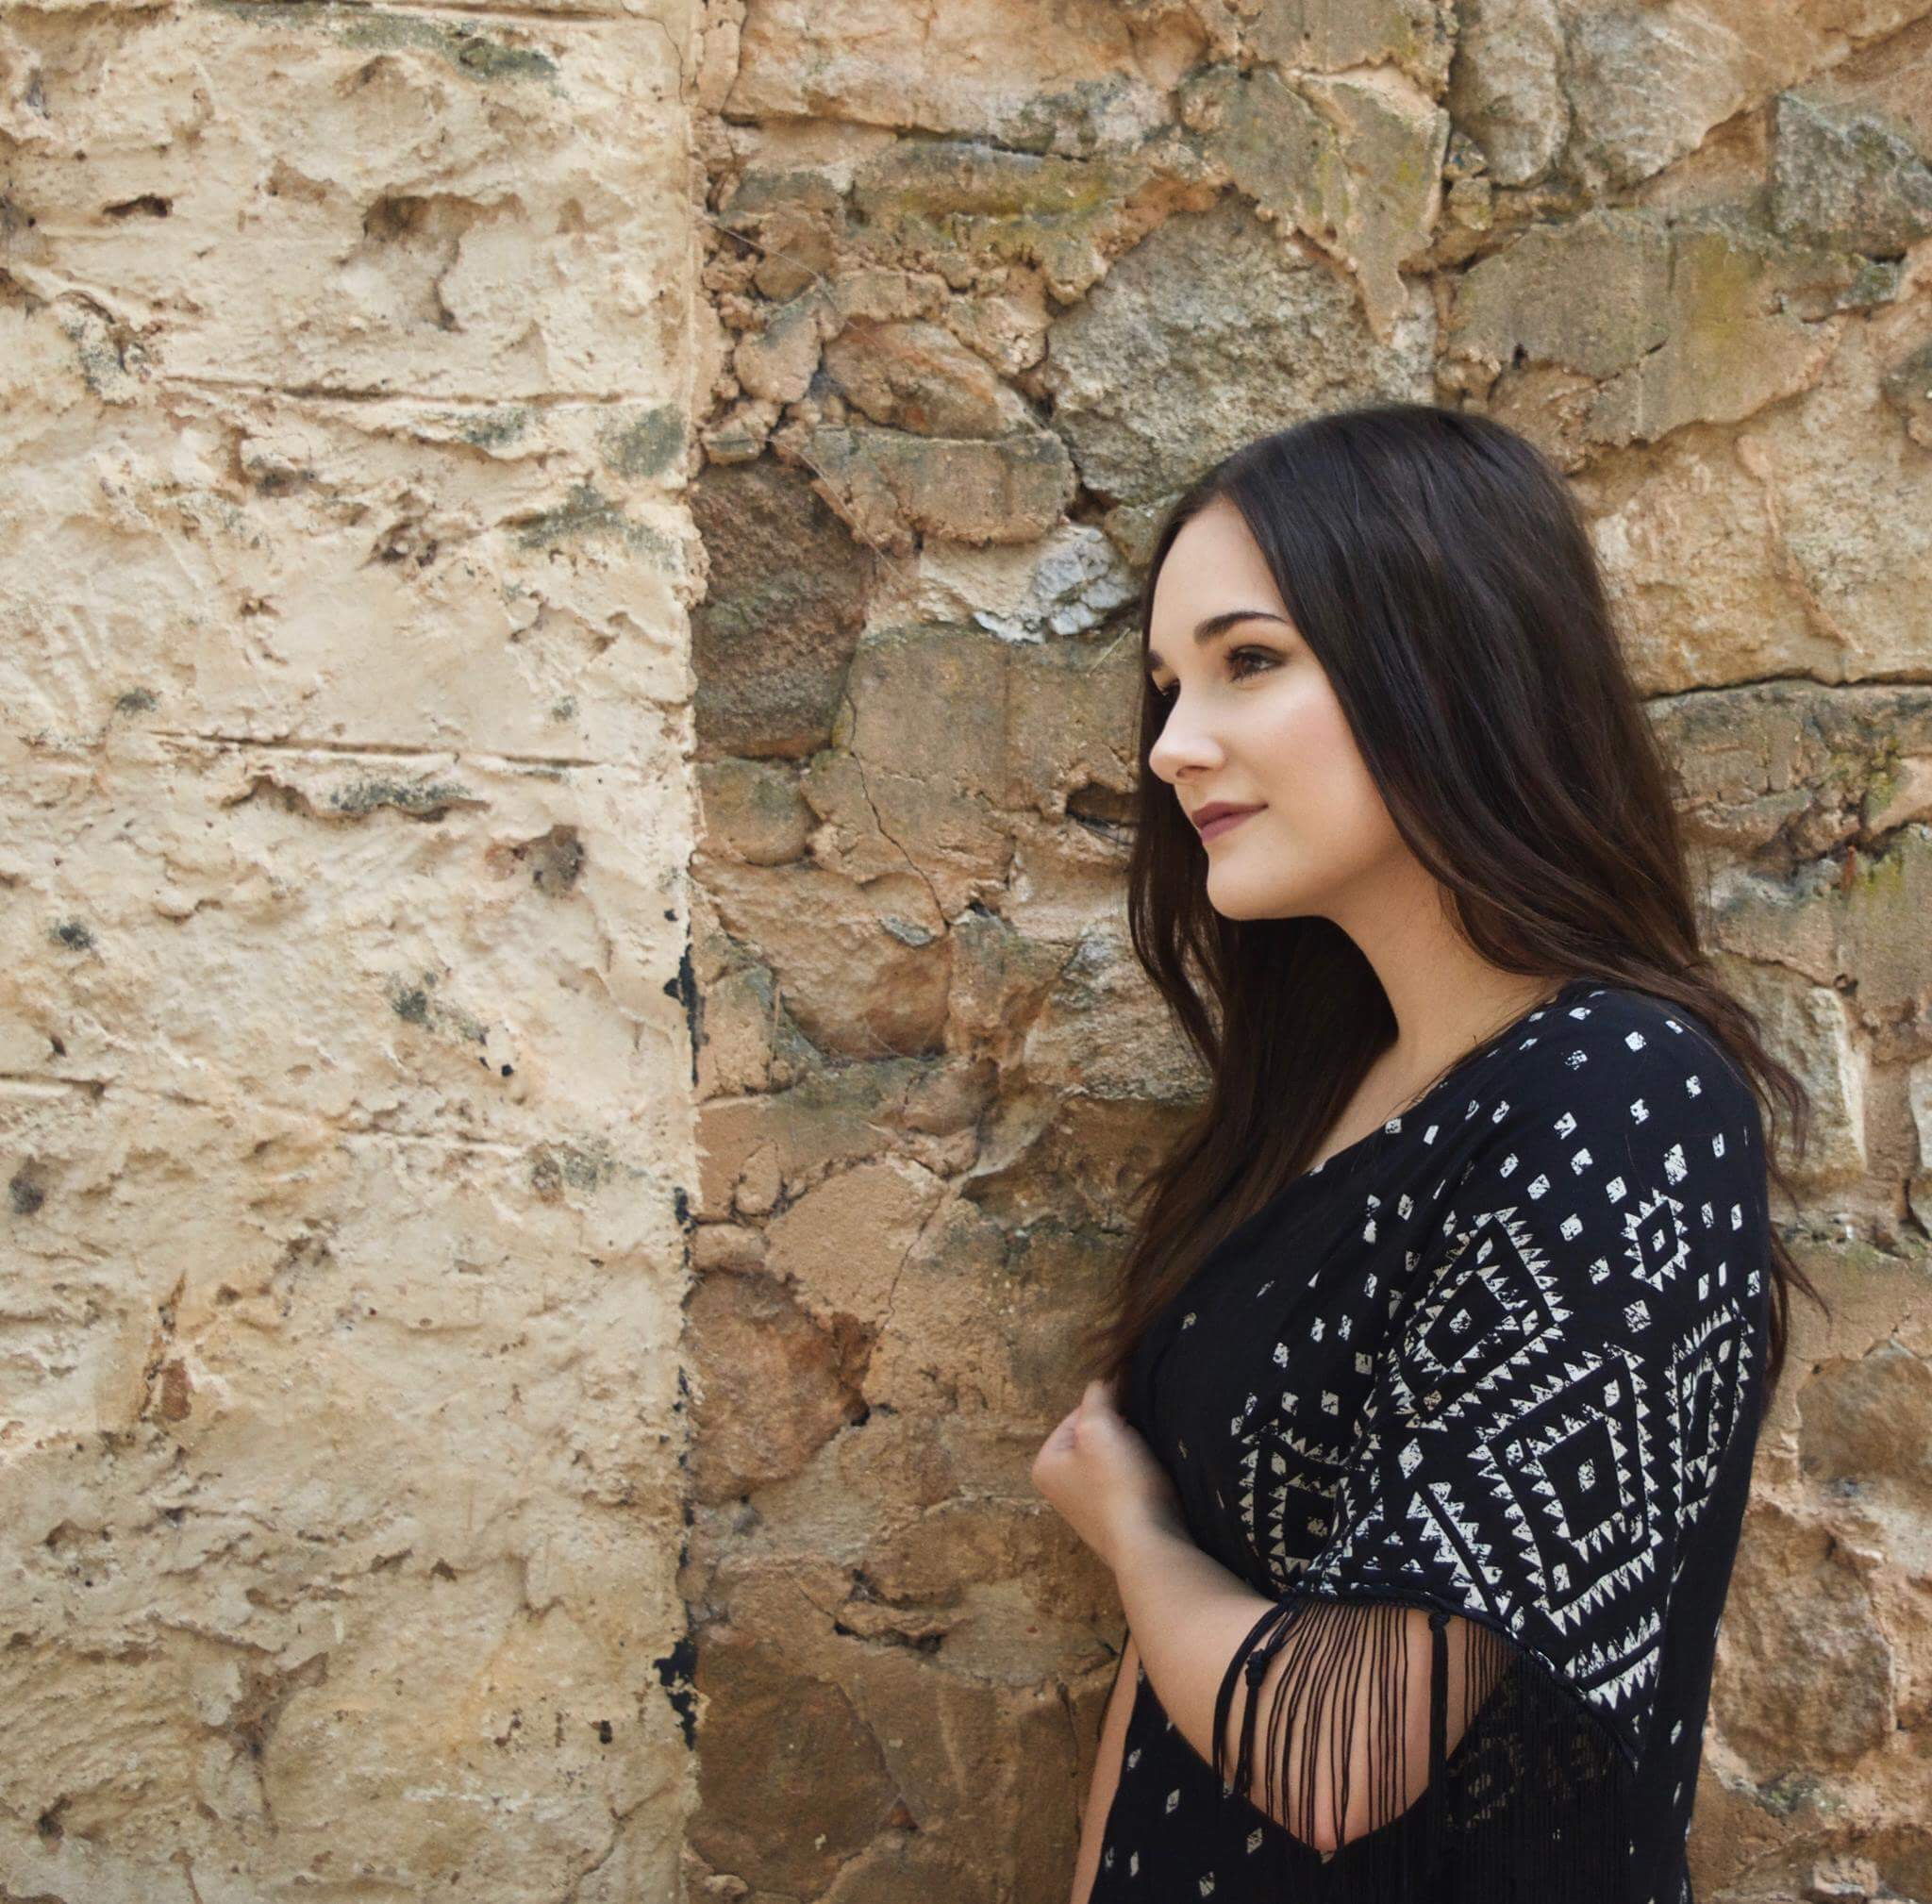 Sadie Humphrey has been singing since age six. She has completed her Diploma of Music through TAFE SA and is now currently studying a Bachelor of Jazz Performance and Pedagogy. Sadie grew up in South East London, moving to Adelaide in 2008. She is a vocal coach for all genres – Jazz, Pop, Blues, R&B, Rock, Country, Soul, Latin, Motown and Musical Theatre– working with individuals and group vocalists, focusing on technique, performance and musicianship.